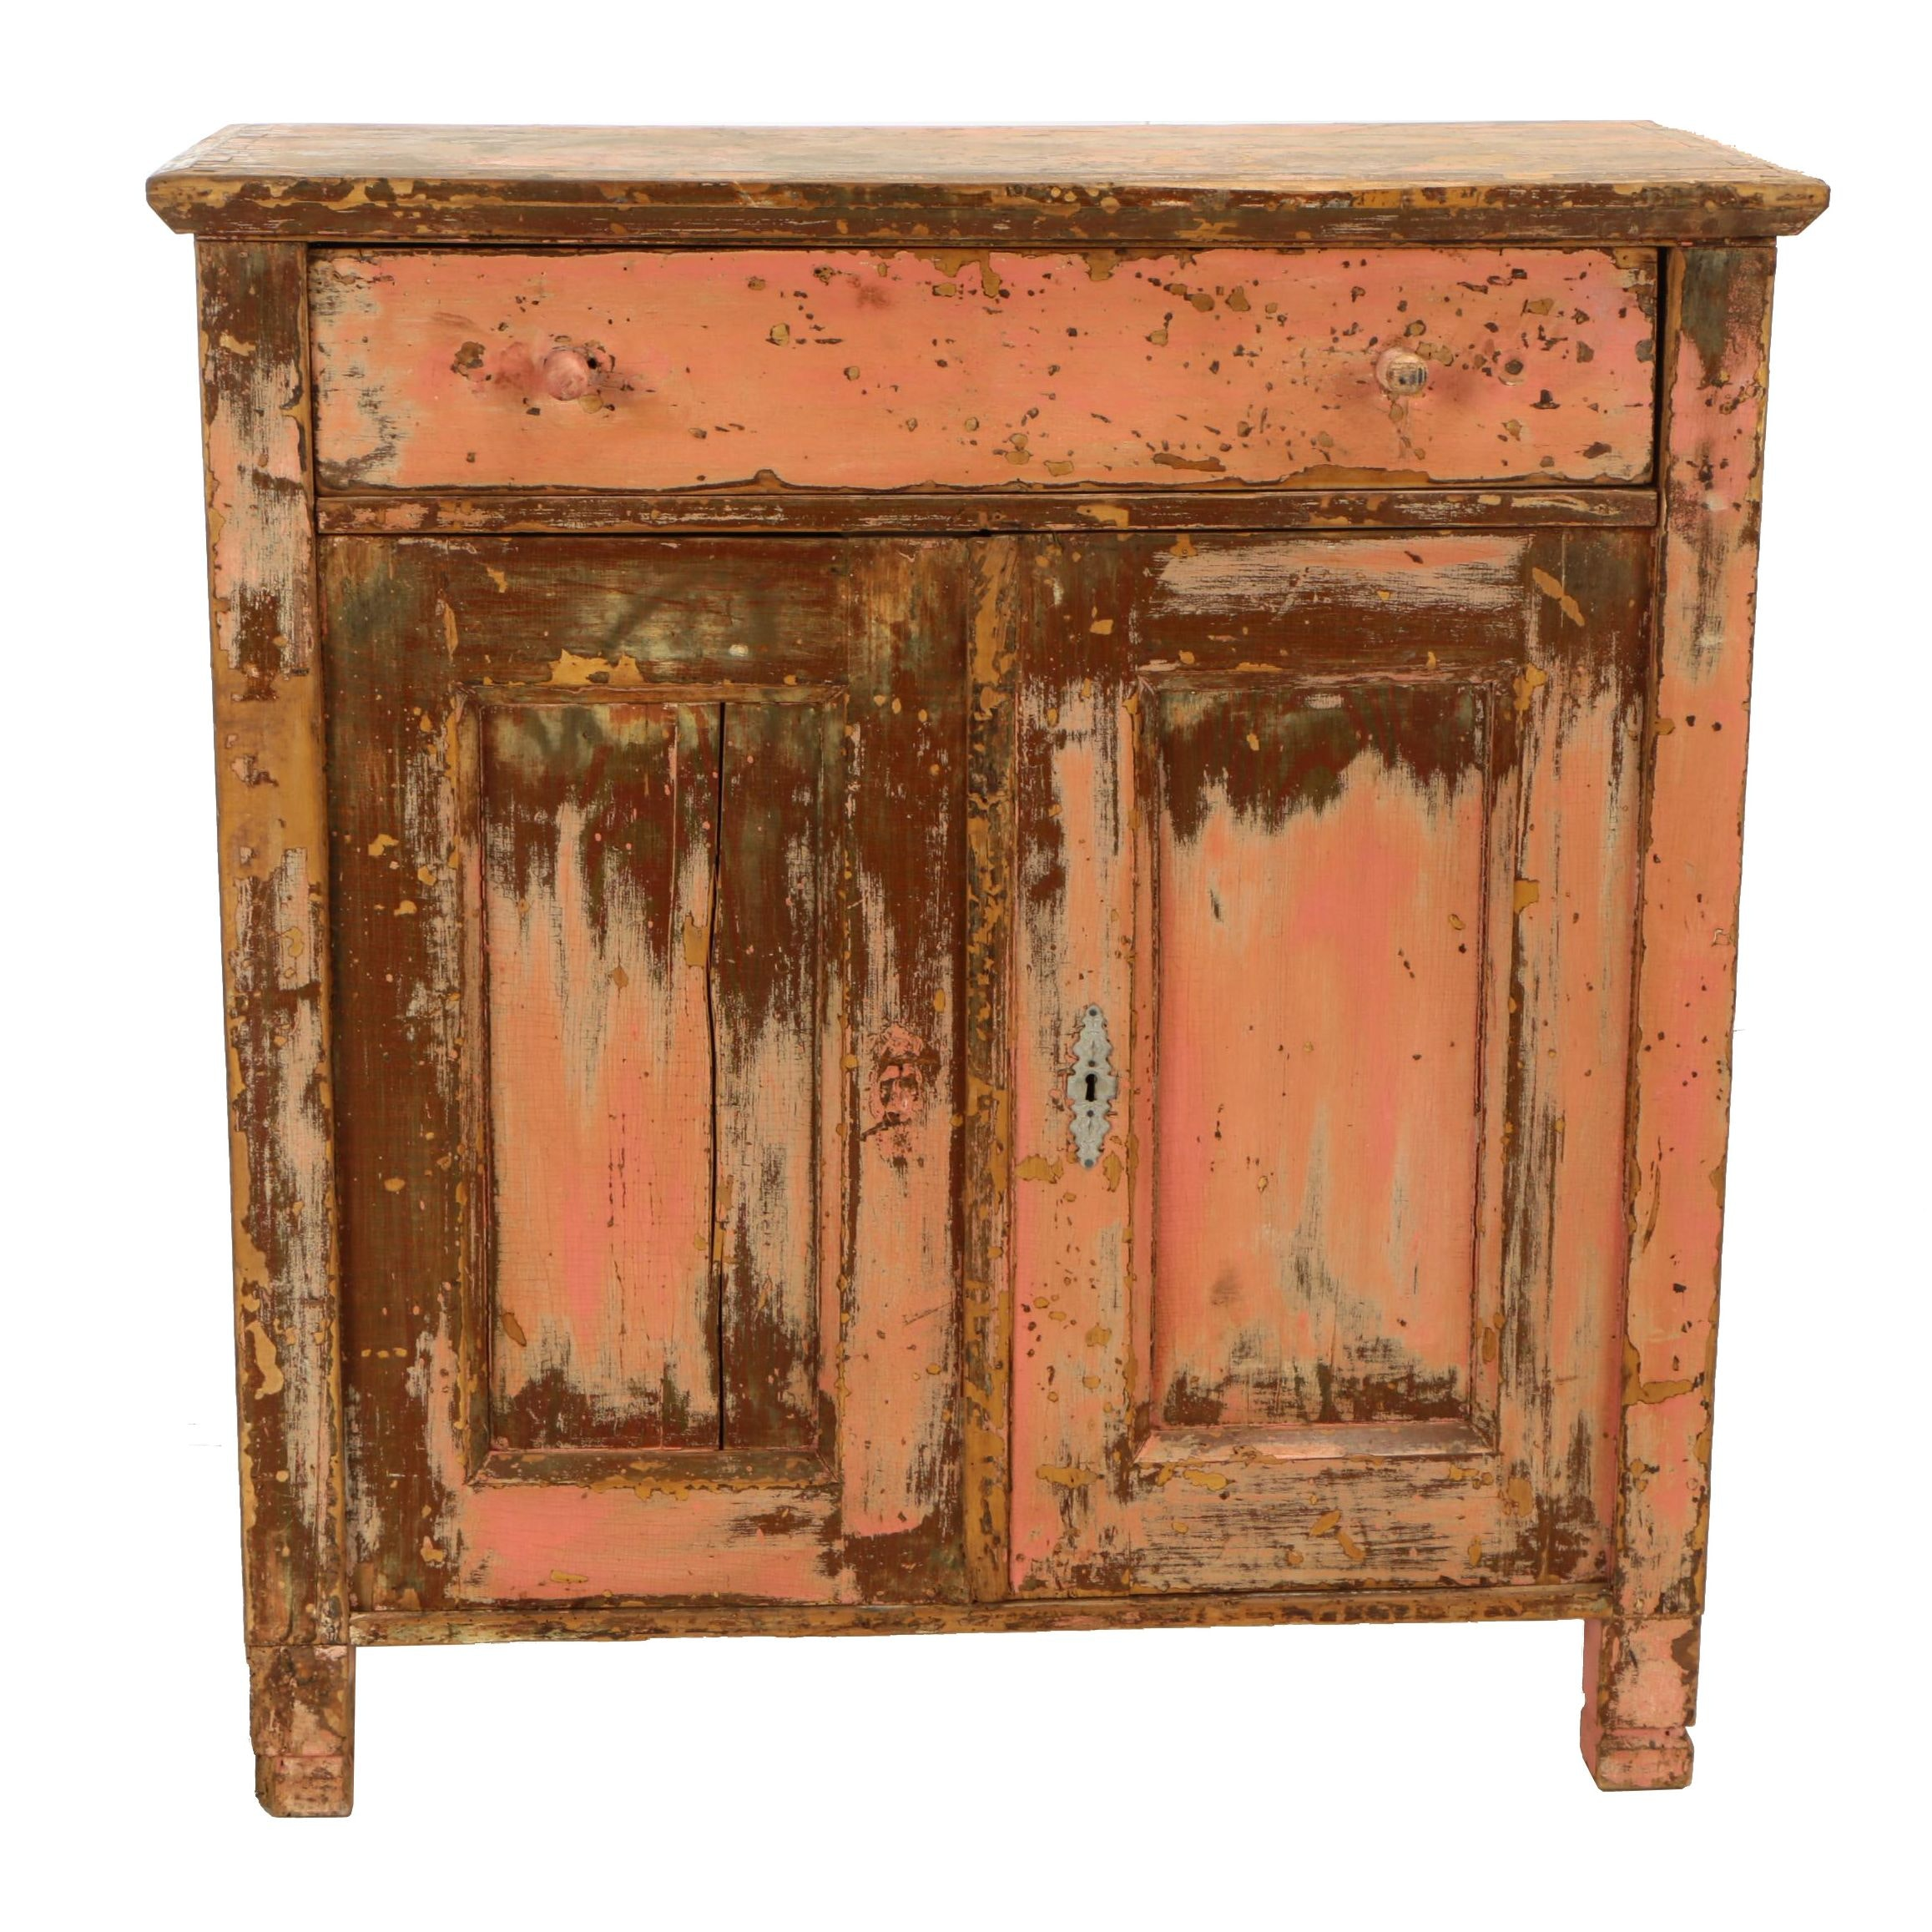 Painted Pine Cabinet, Late 19th/Early 20th Century